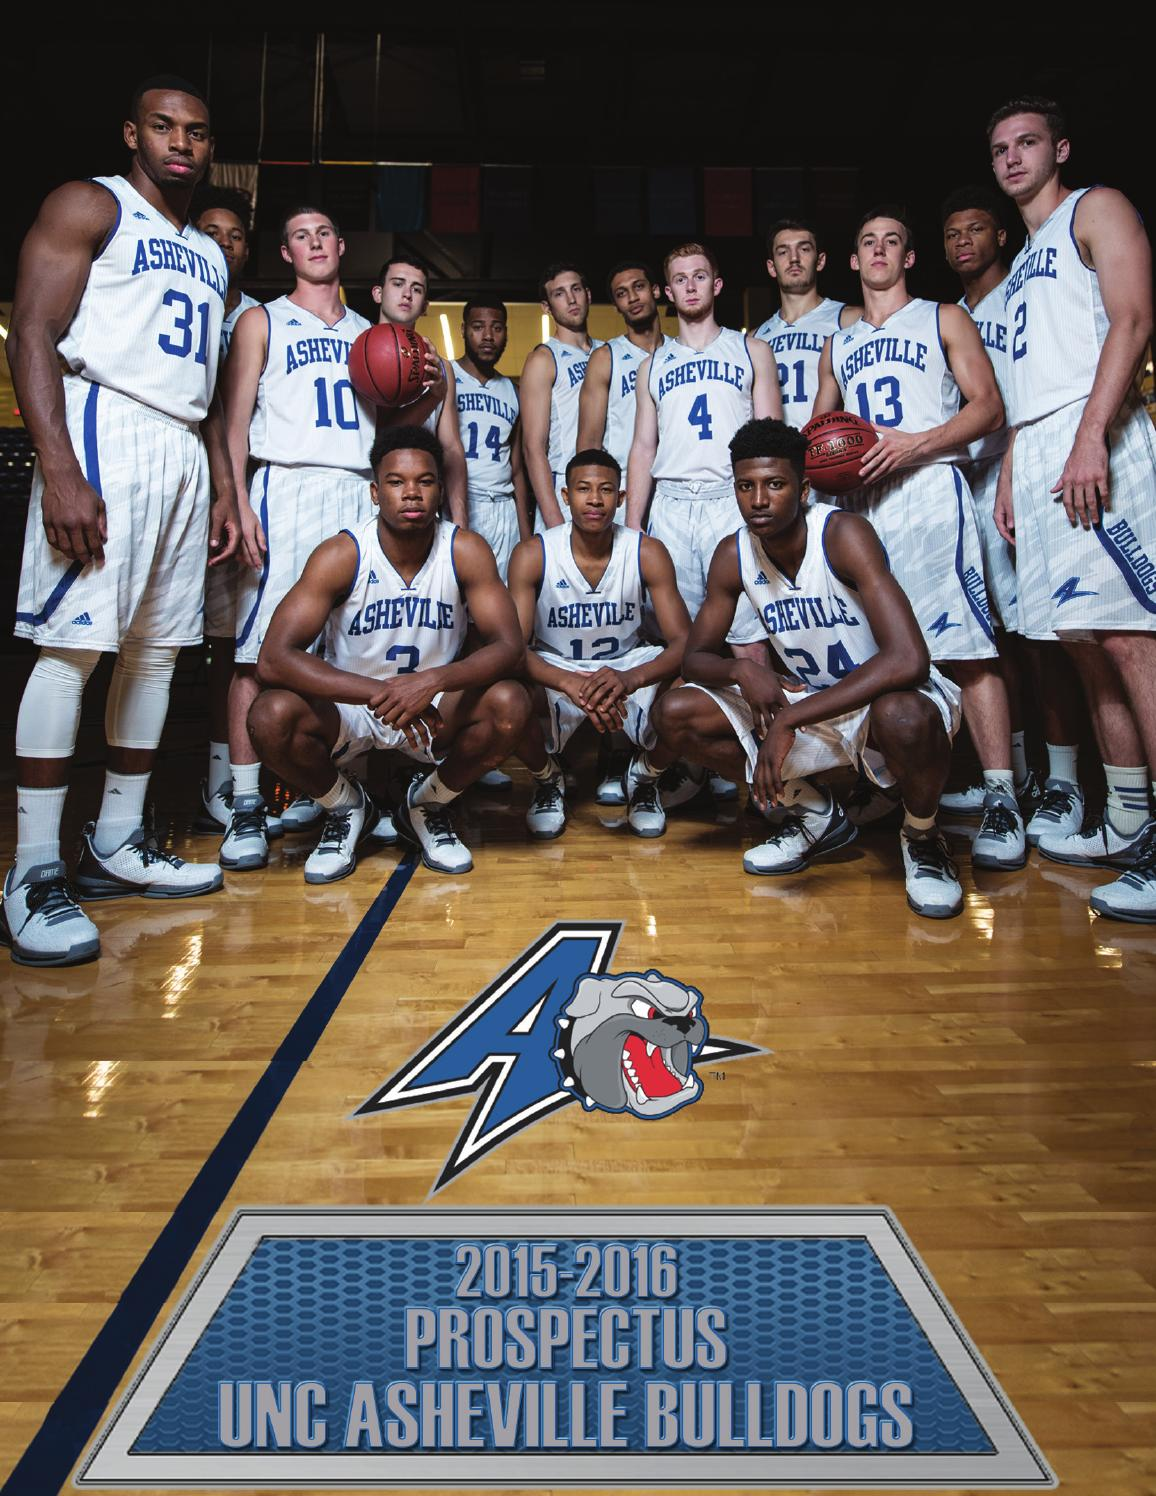 2015-2016 unc asheville men's basketball prospectus by unc asheville